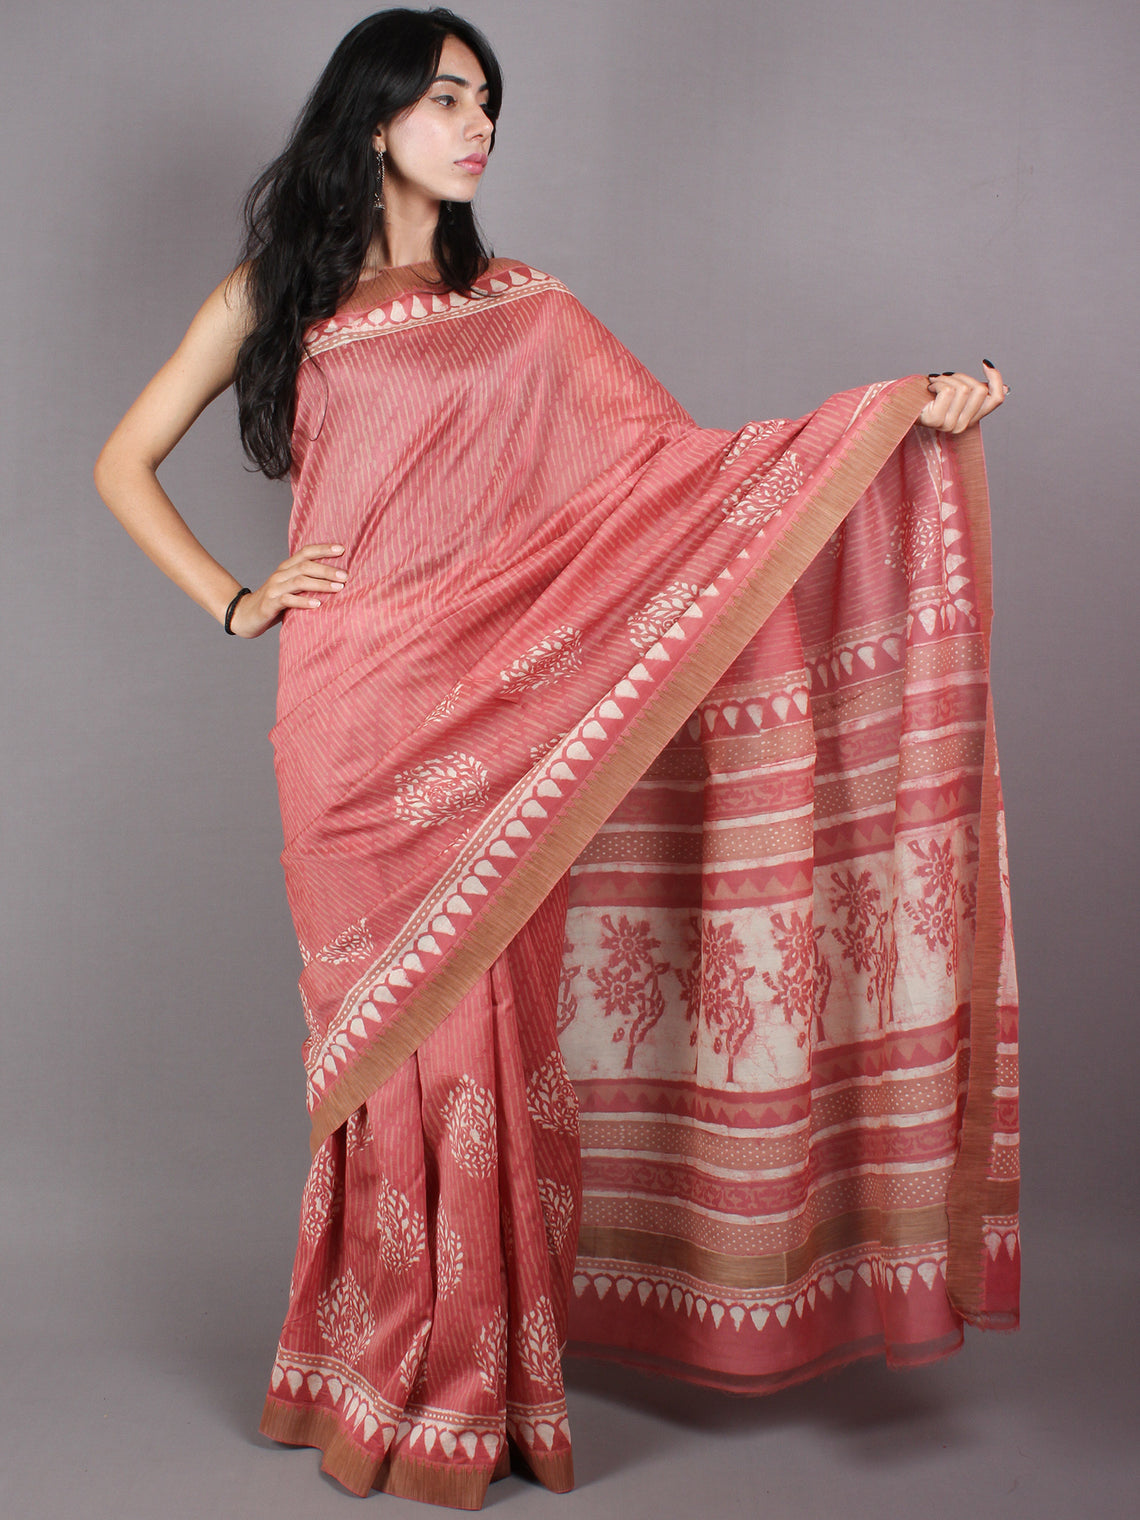 Pastel Peach Beige White Hand Block Printed in Natural Vegetable Colors Chanderi Saree With Geecha Border - S03170371